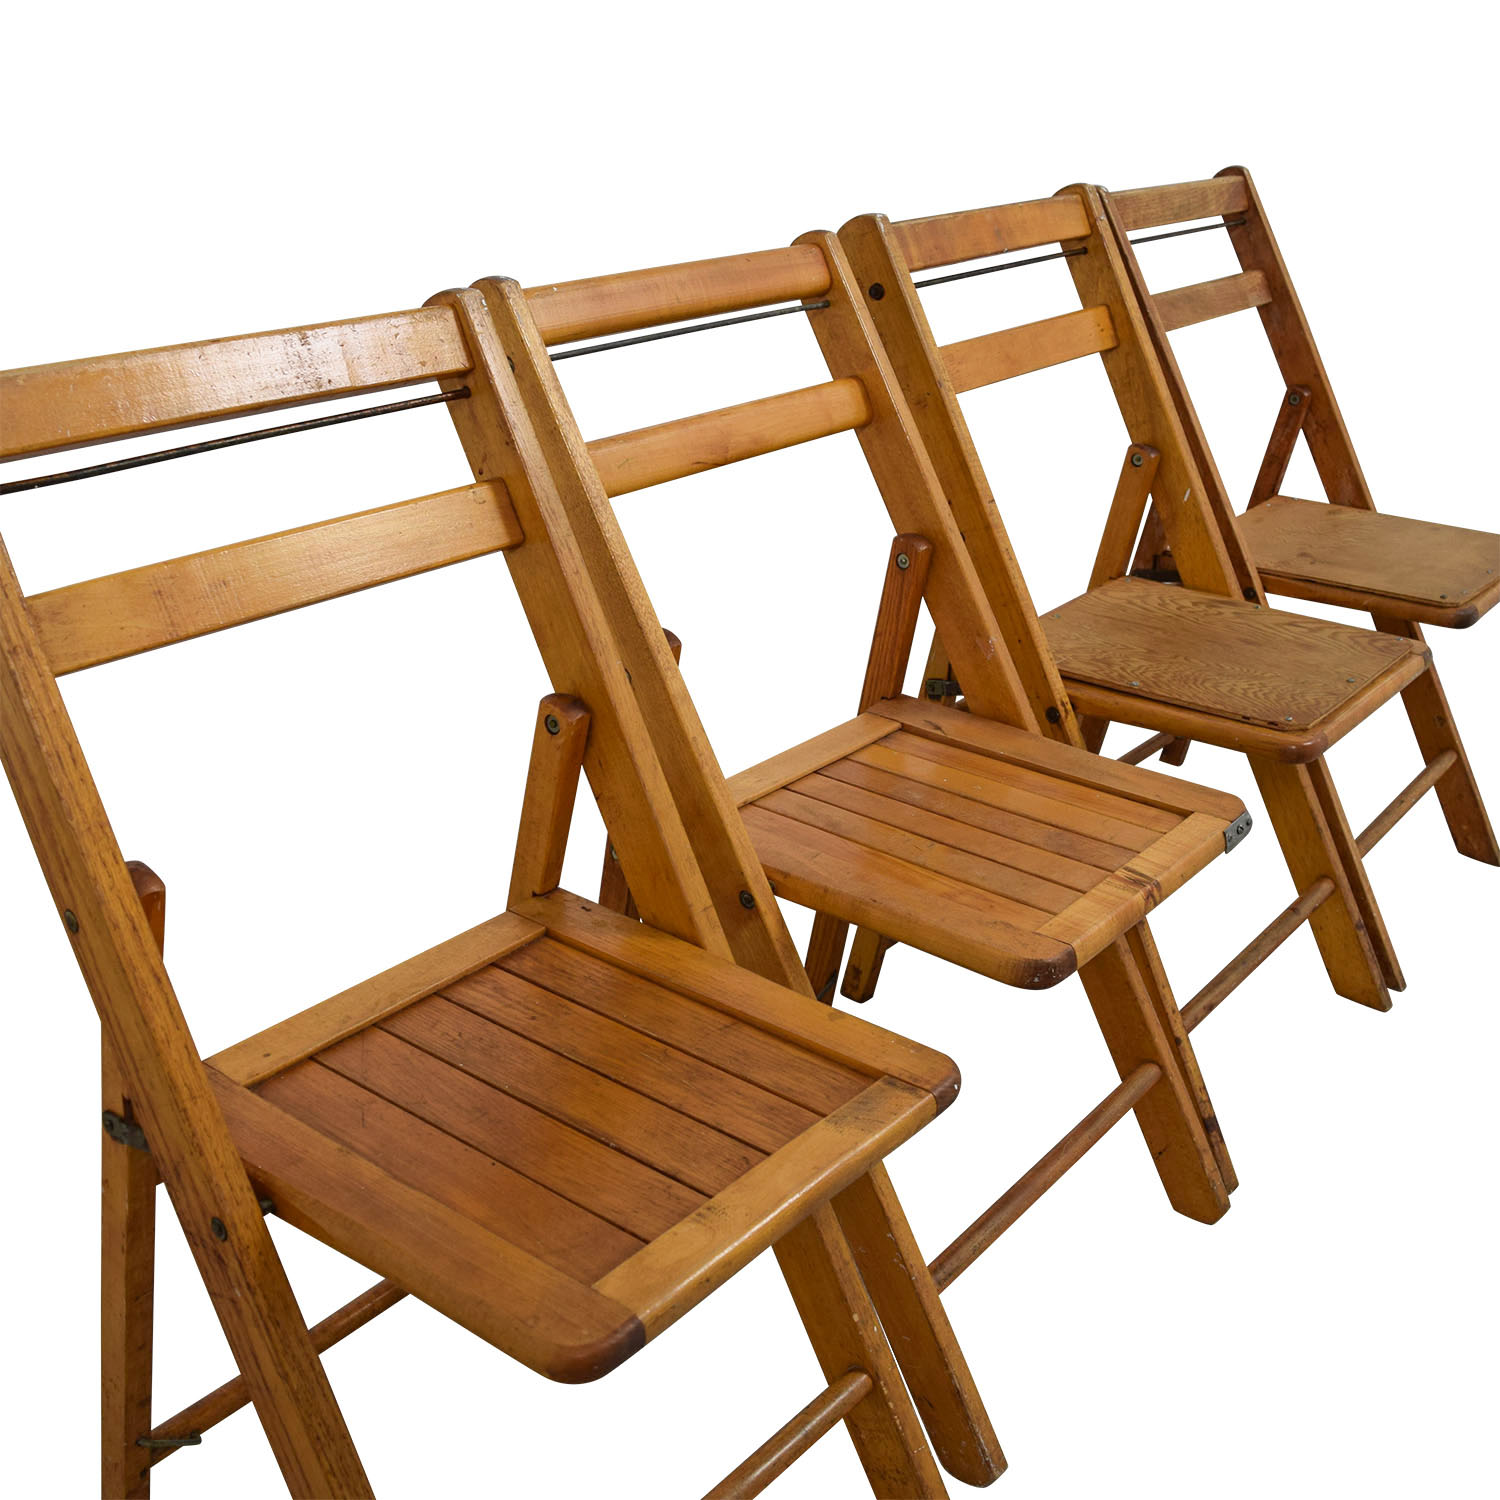 Rustic Wood Folding Chairs Chairs